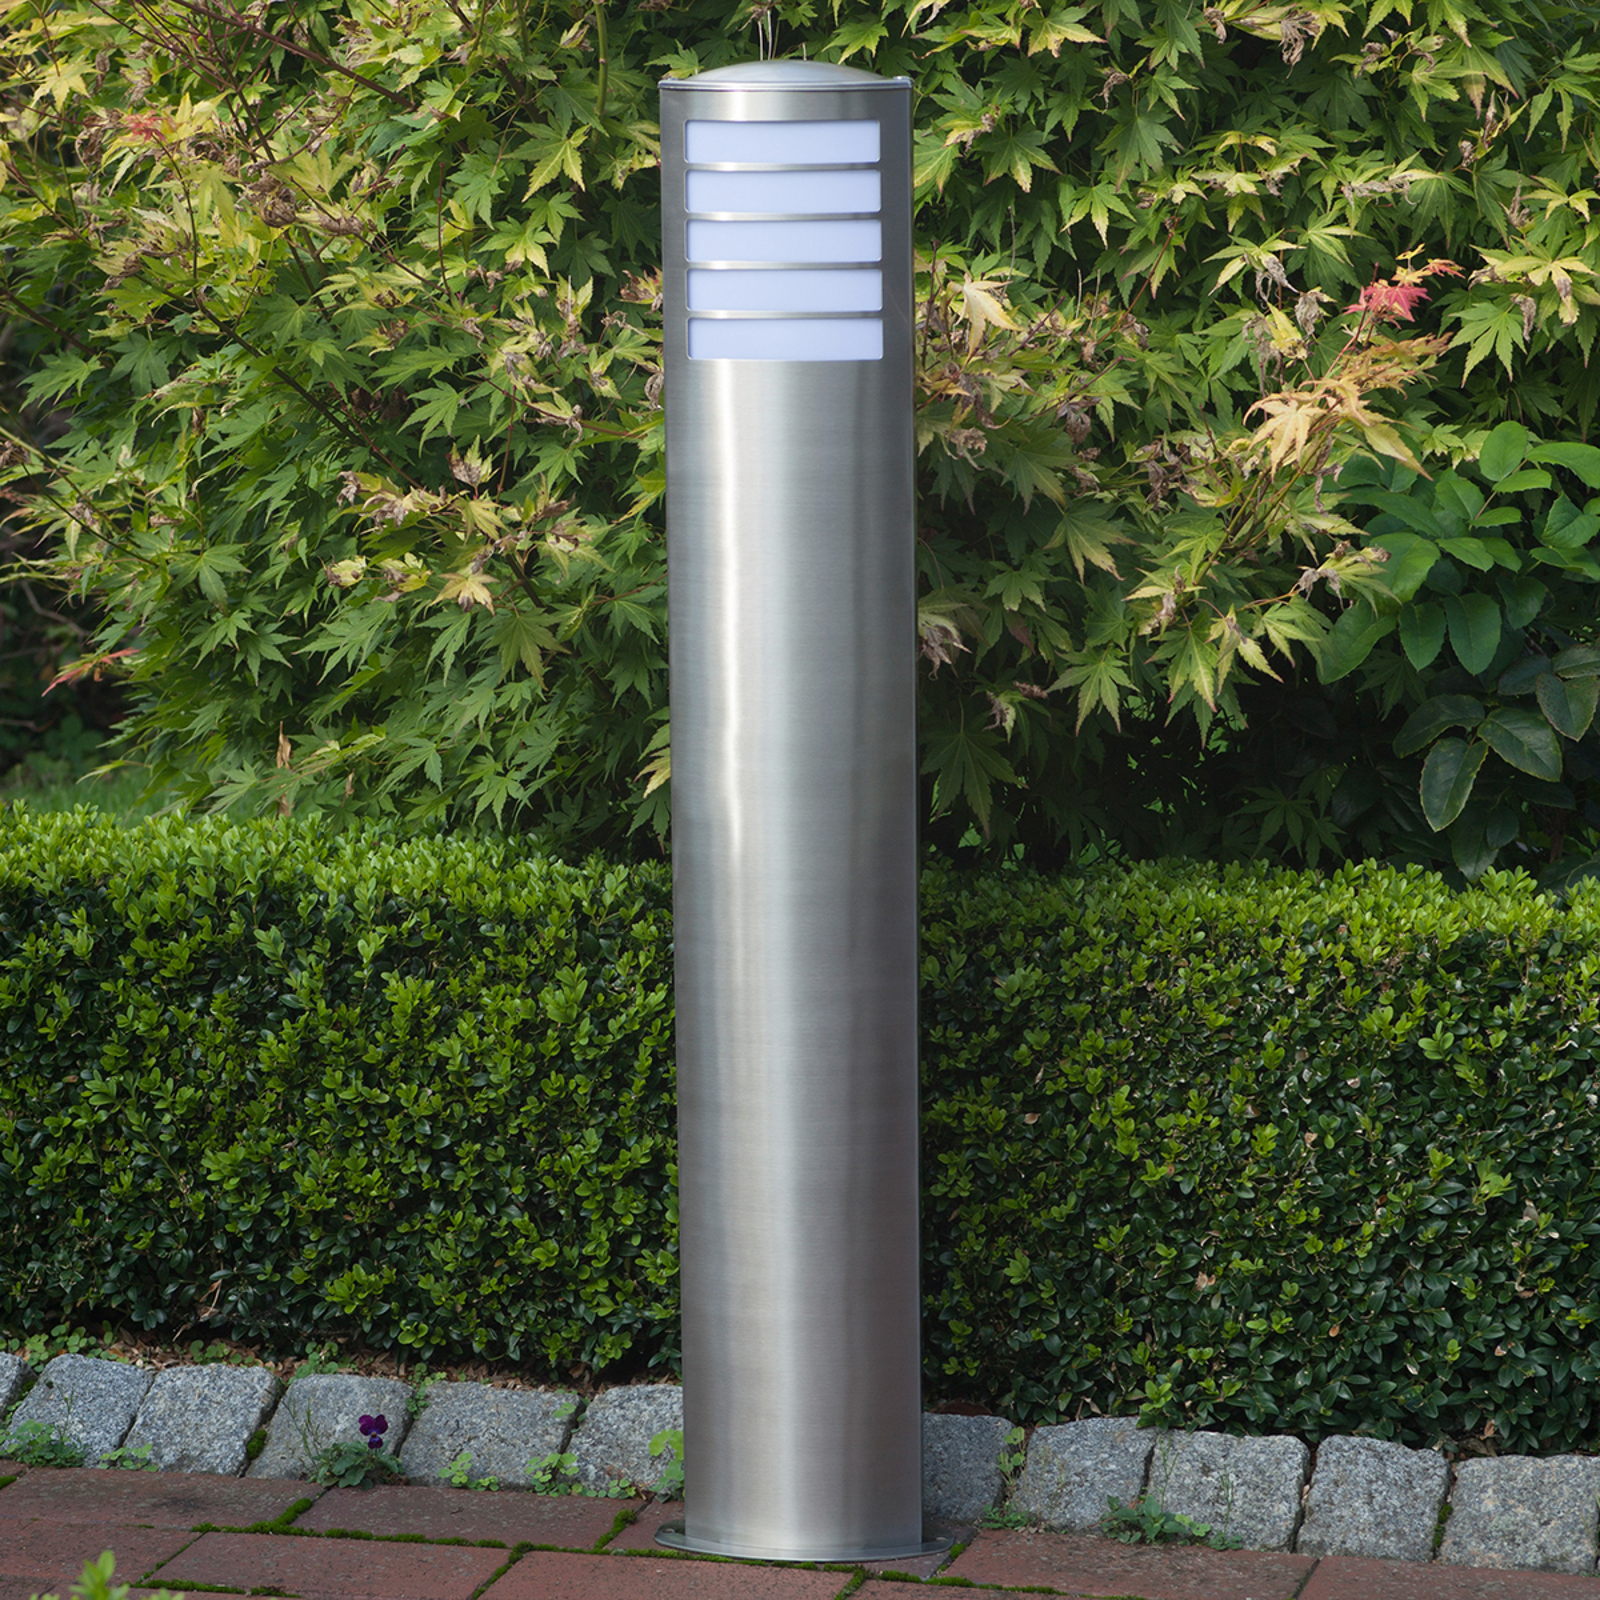 Todd stainless steel path light_1507252_1